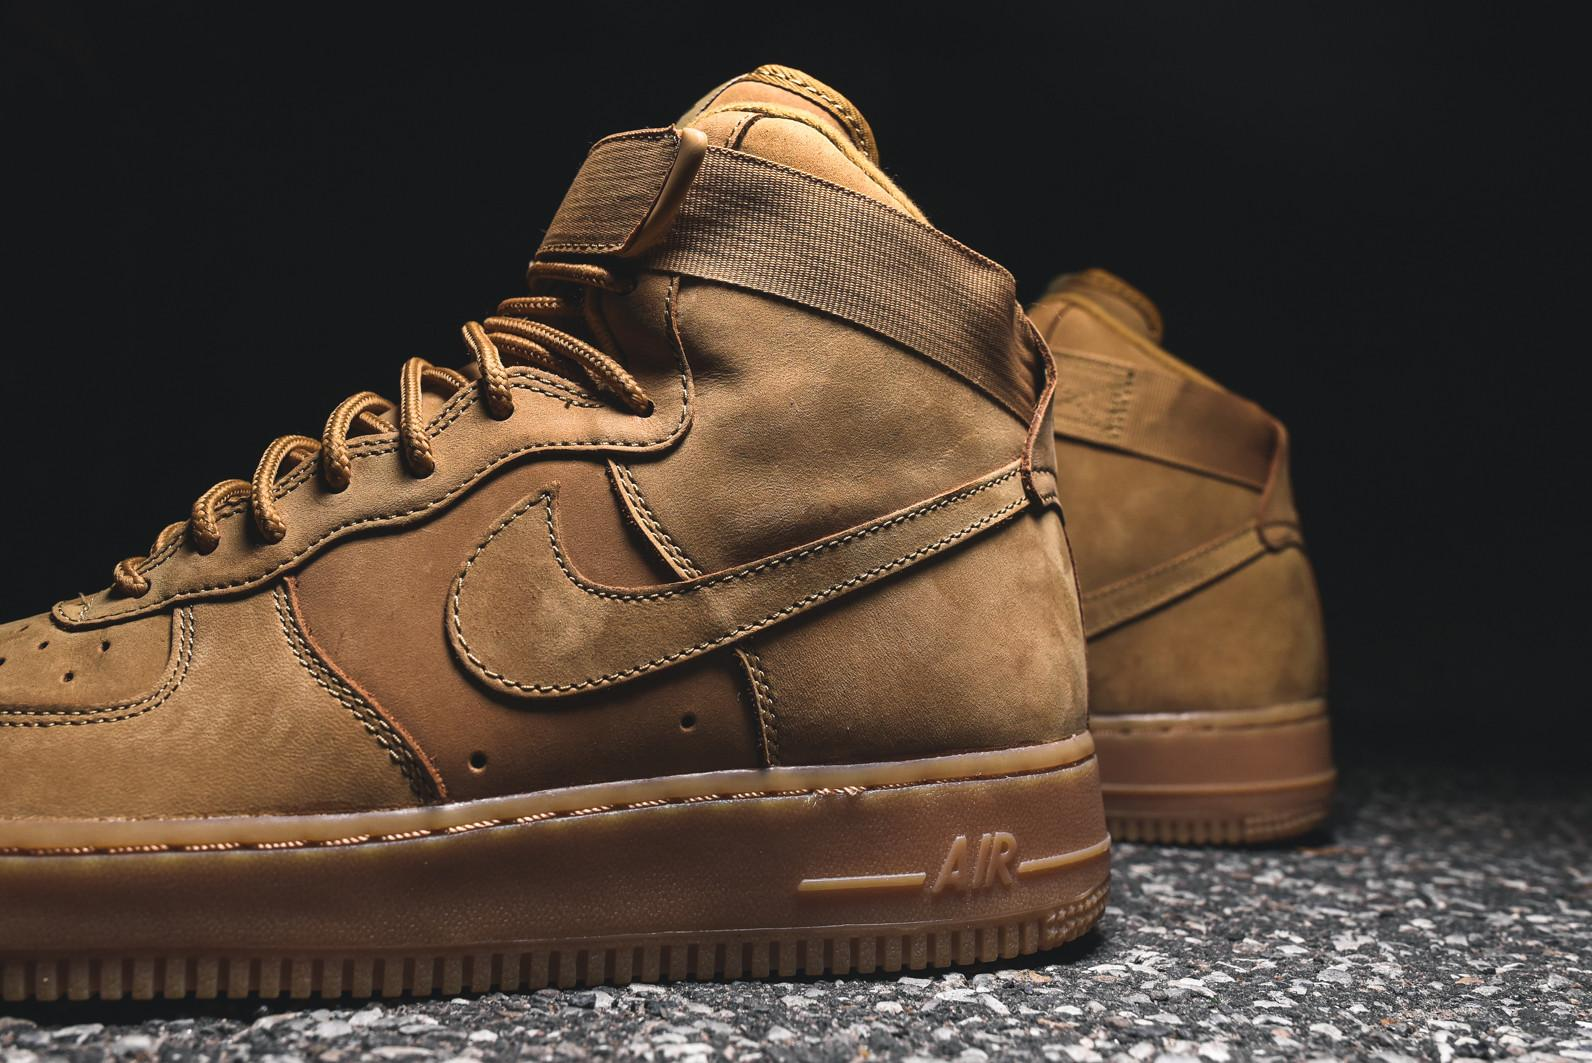 detailed look e48de ccdec Nike Air Force 1 High - Flax / Gum – Kith